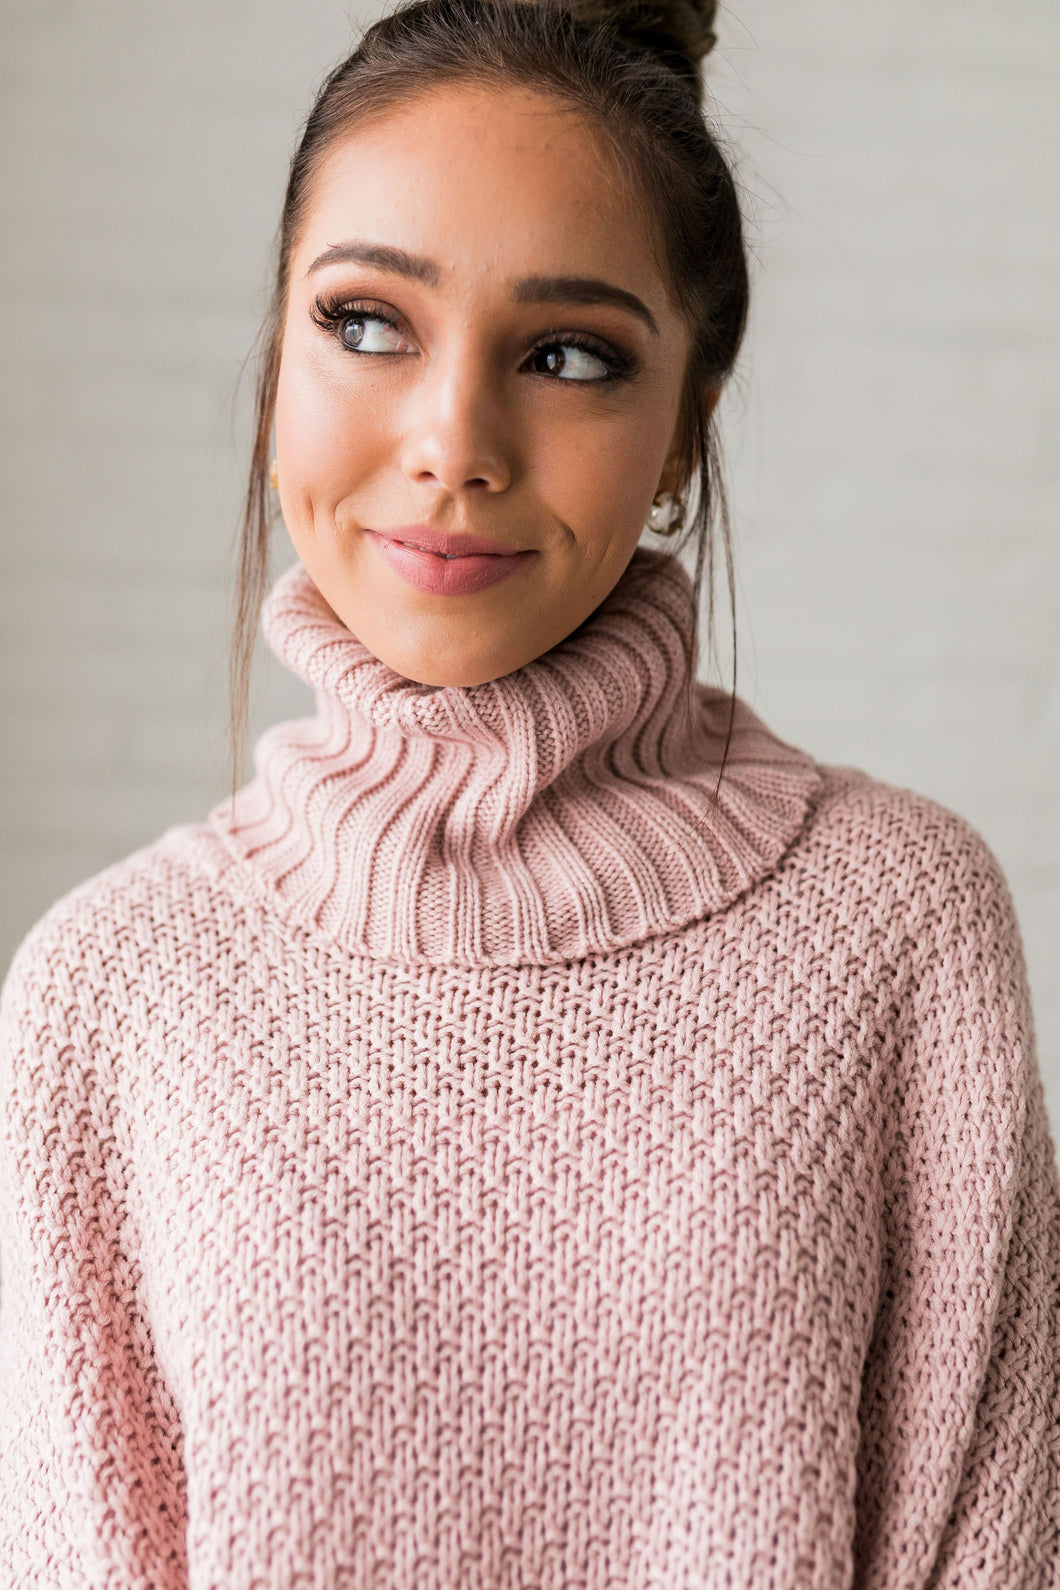 Chunky Cowl Neck Sweater - ALL SALES FINAL - Boho Valley Boutique